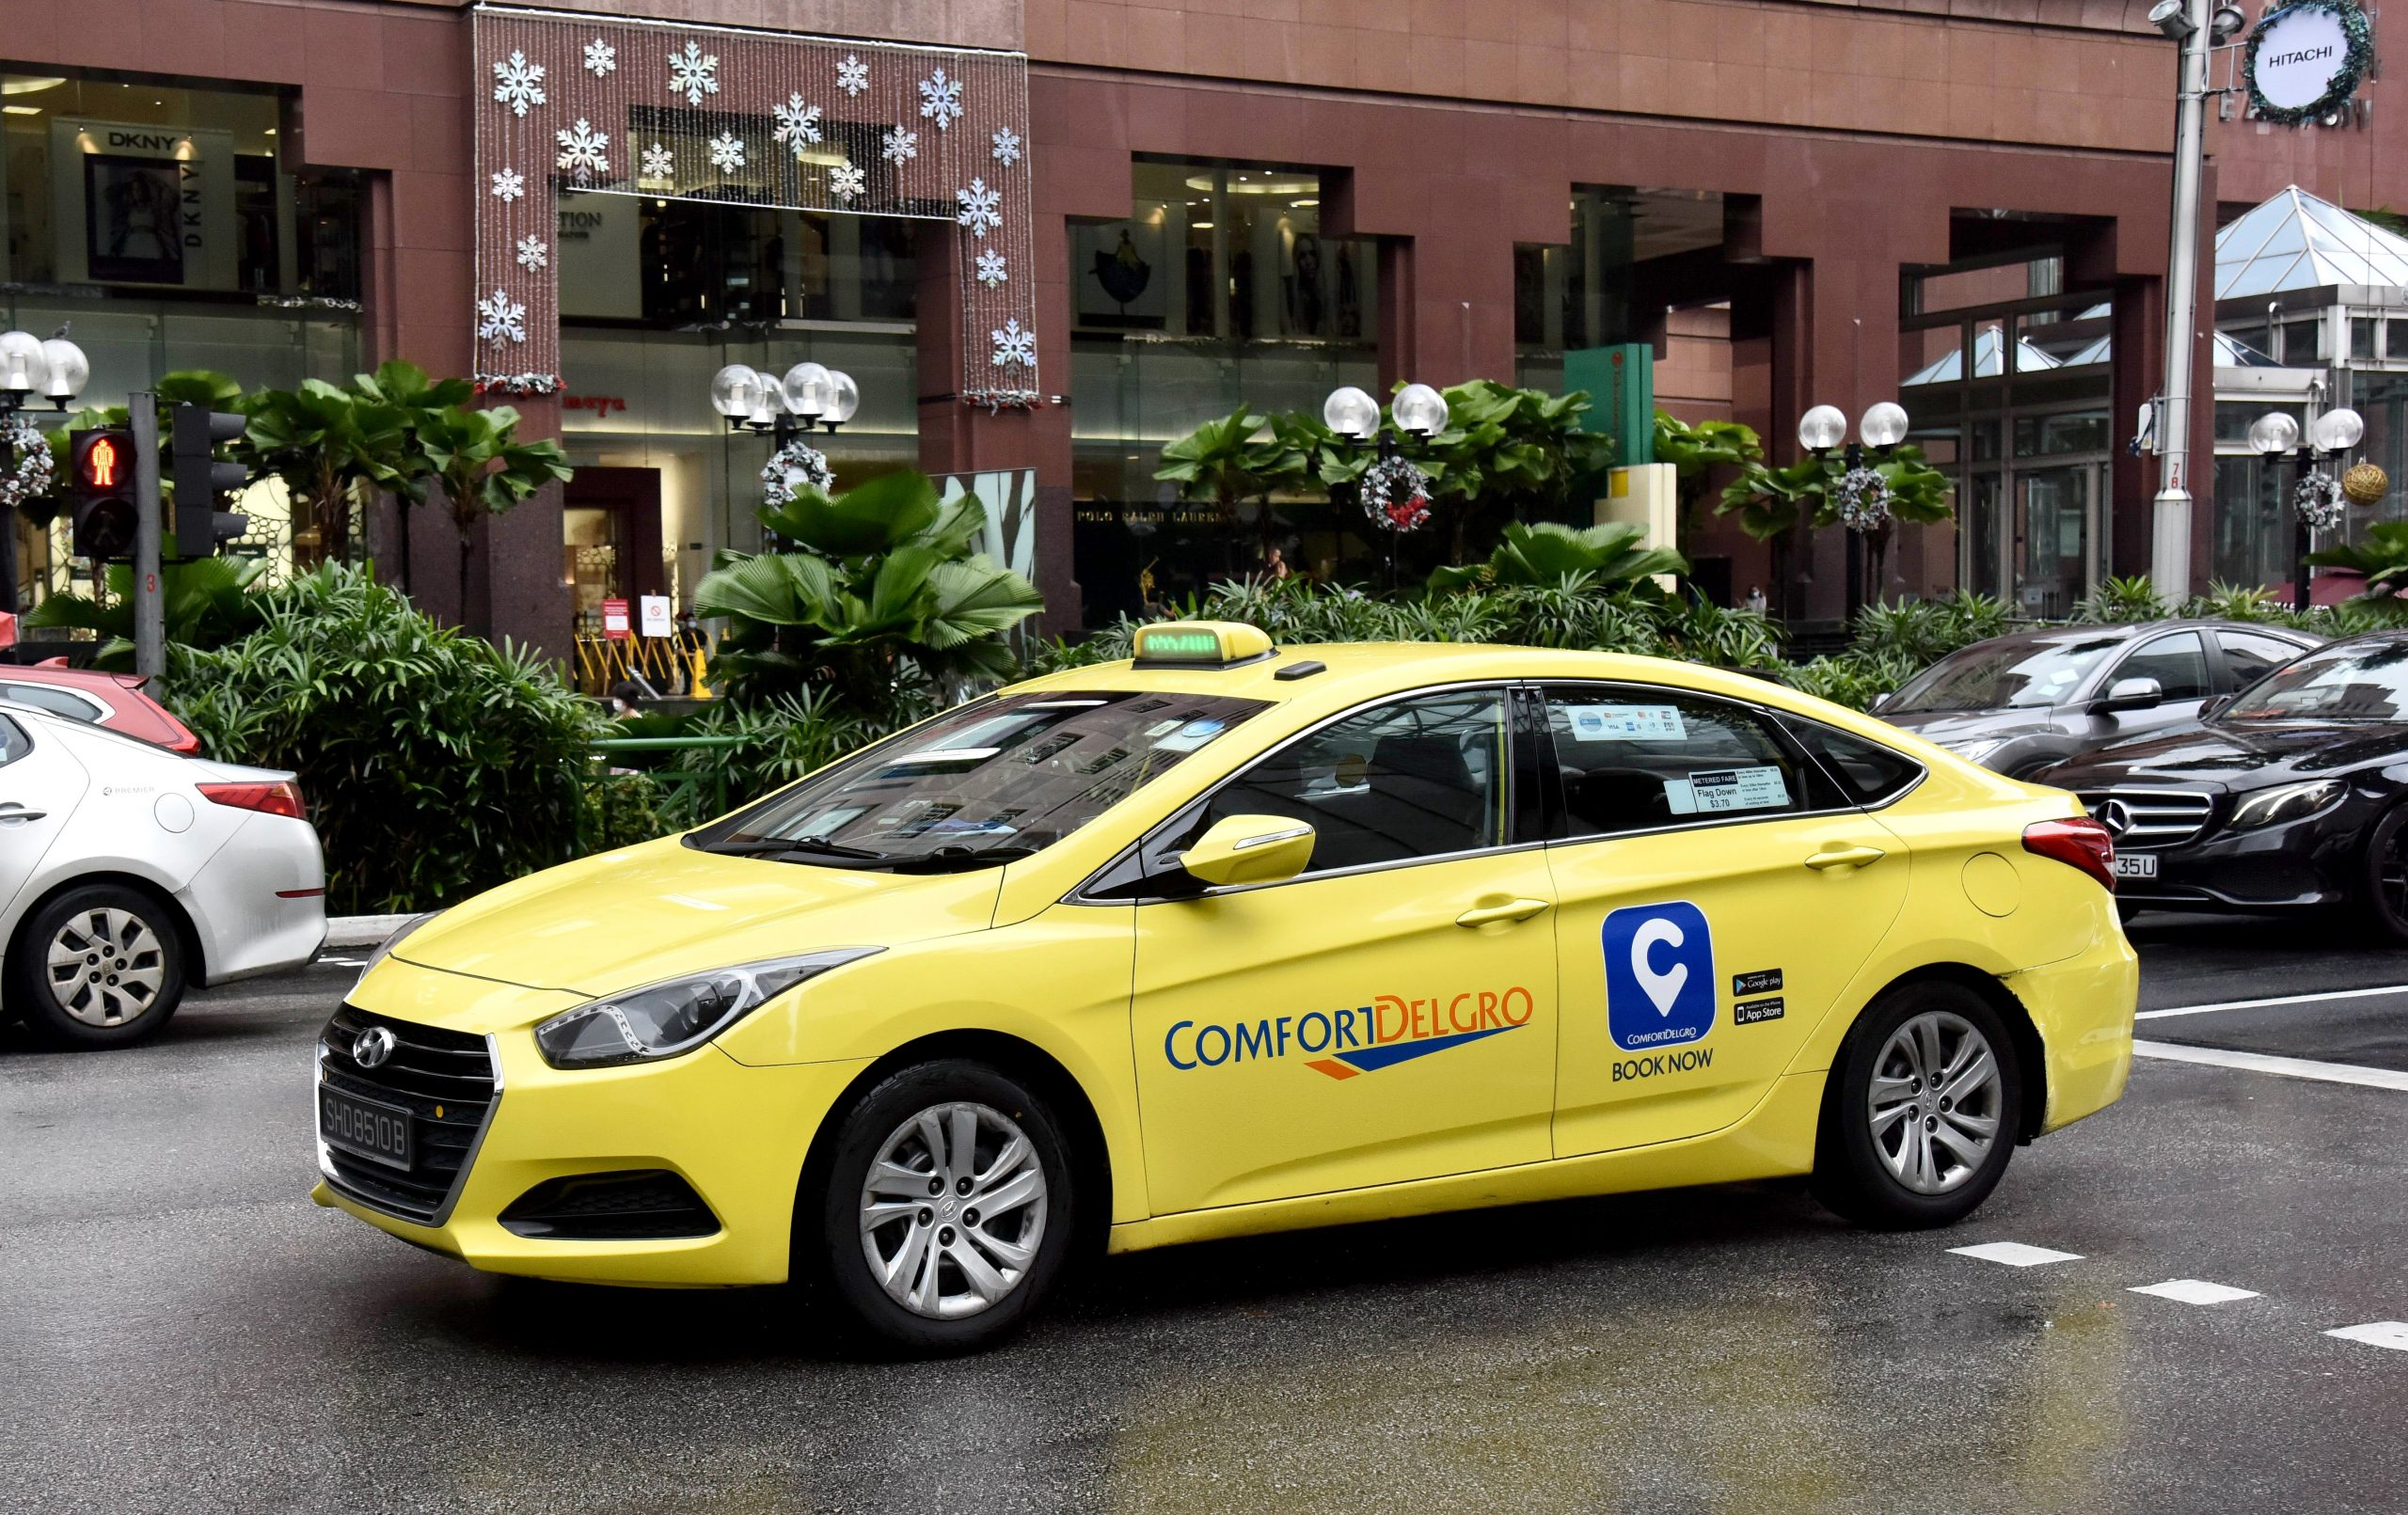 CityCab cabby commended for making U-turn to return phone to passenger and rejecting S$50 reward